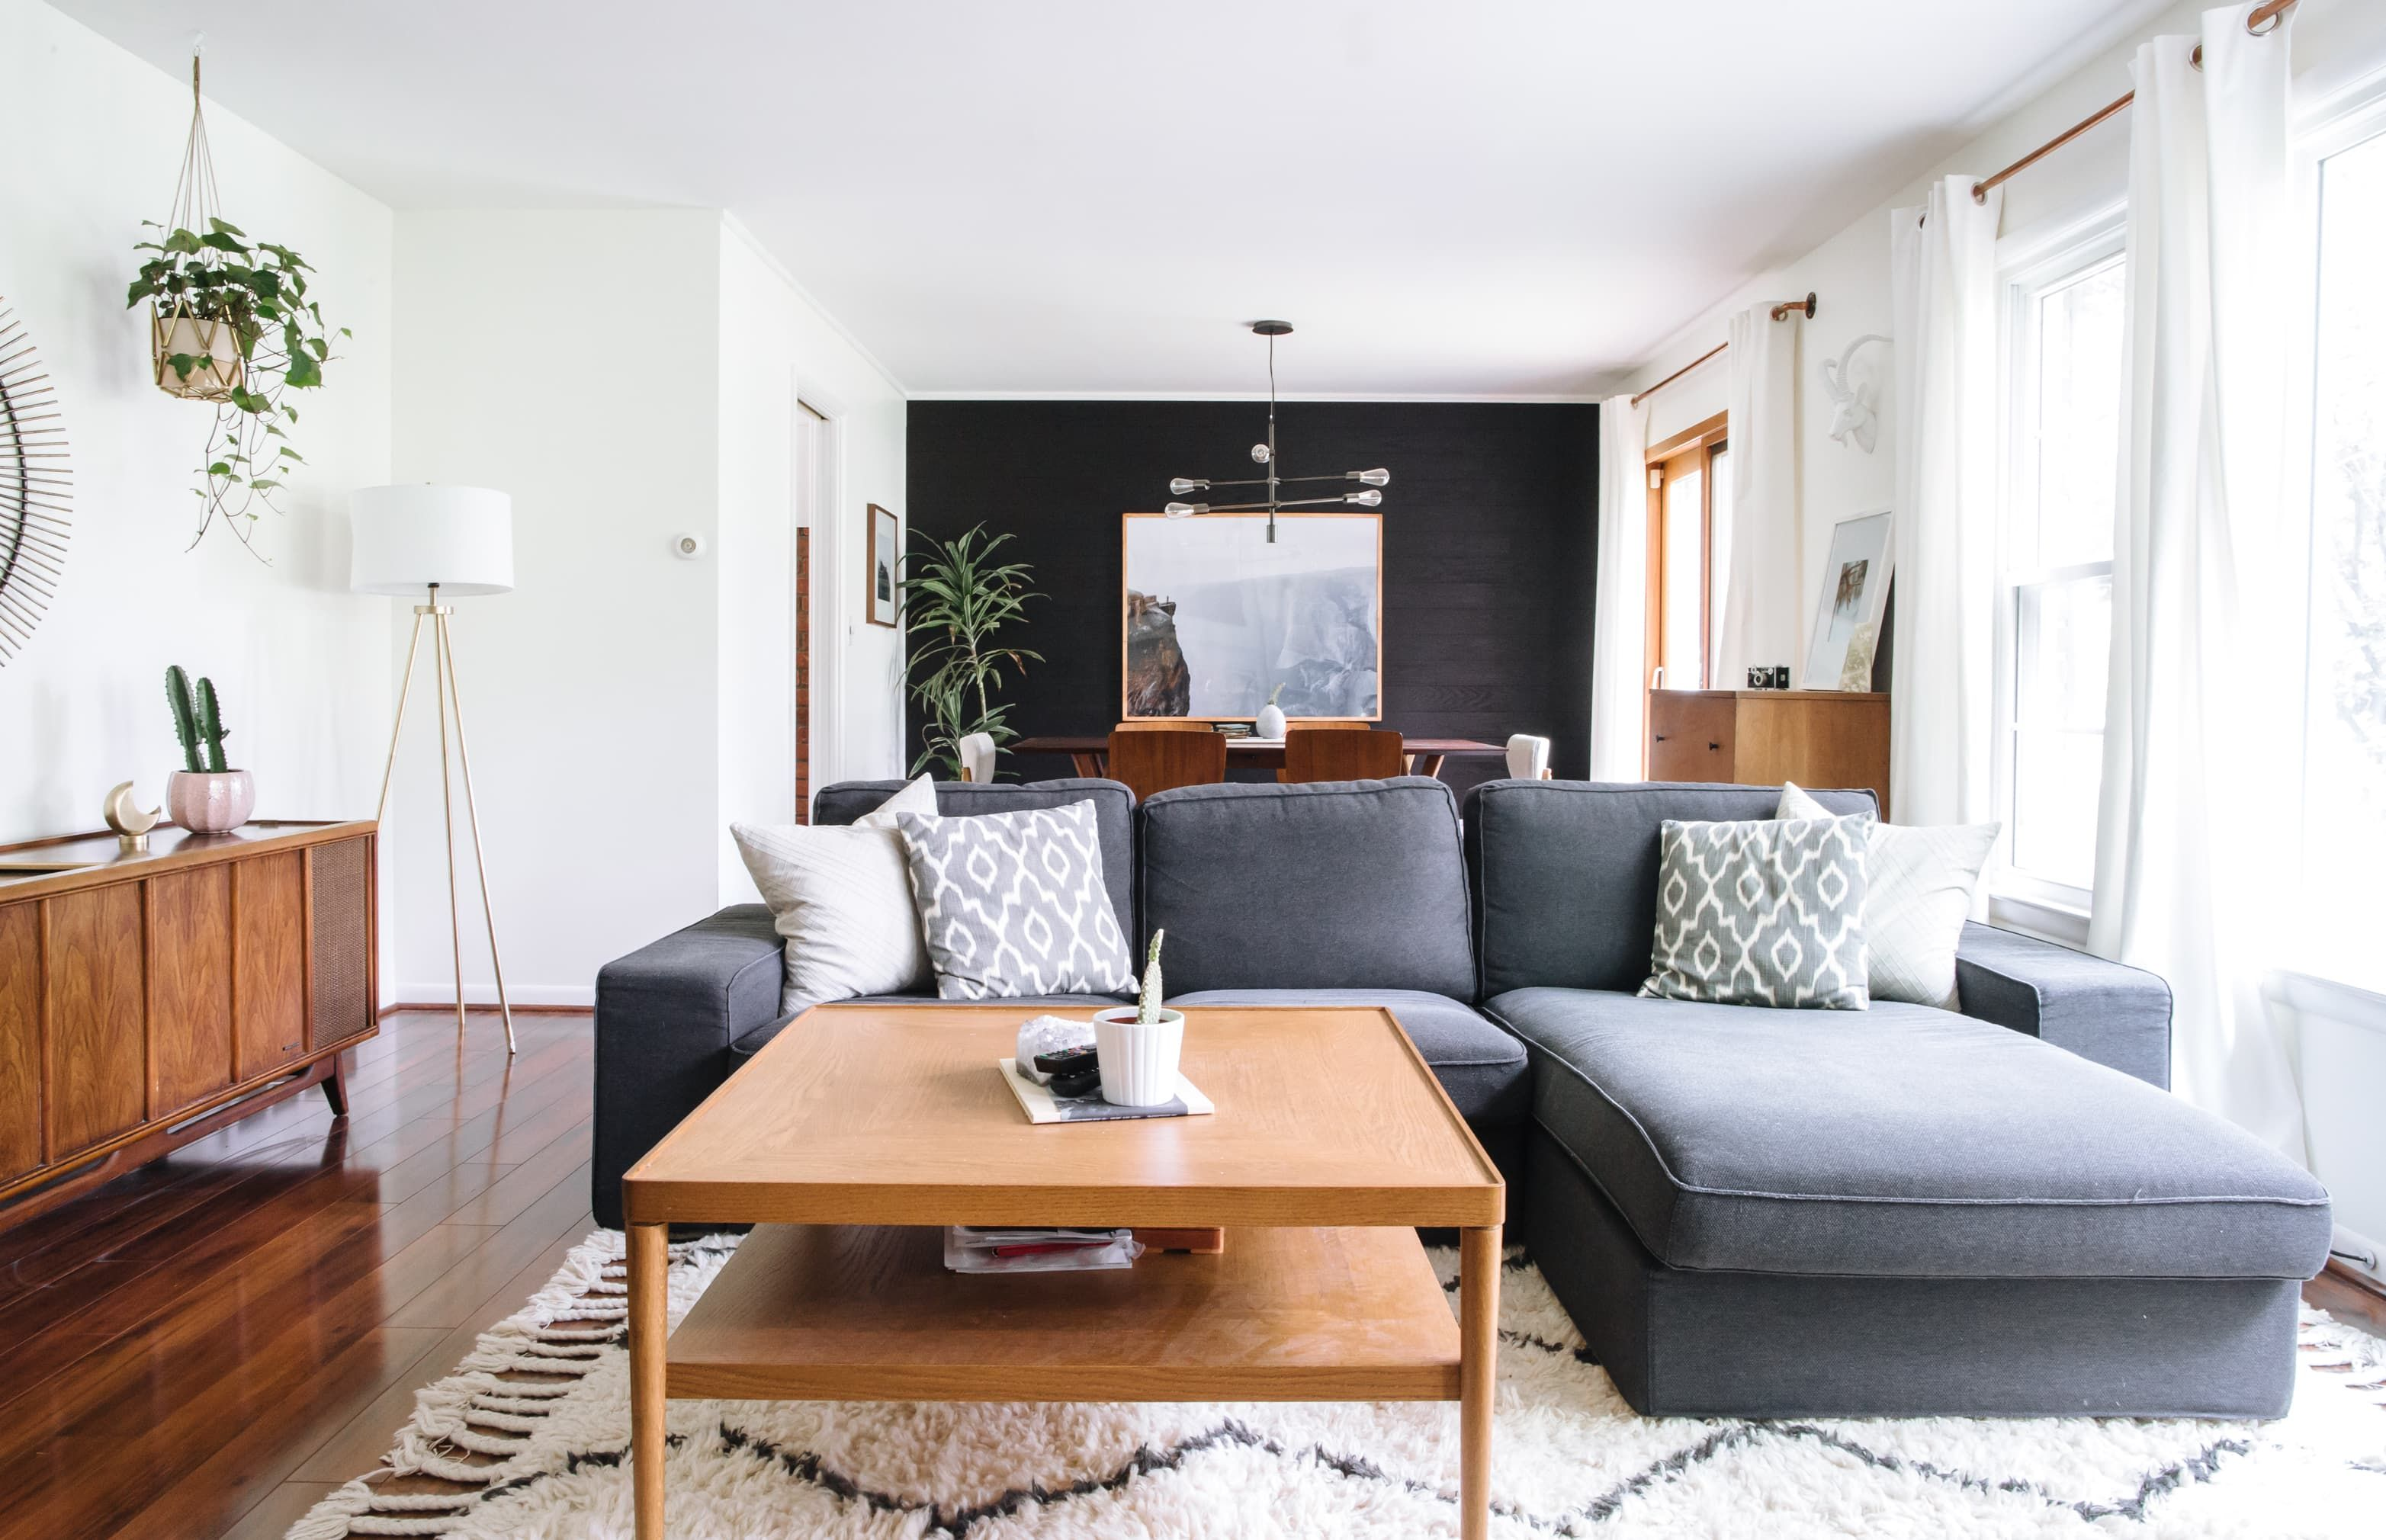 9 cheap design tricks that will make your home look